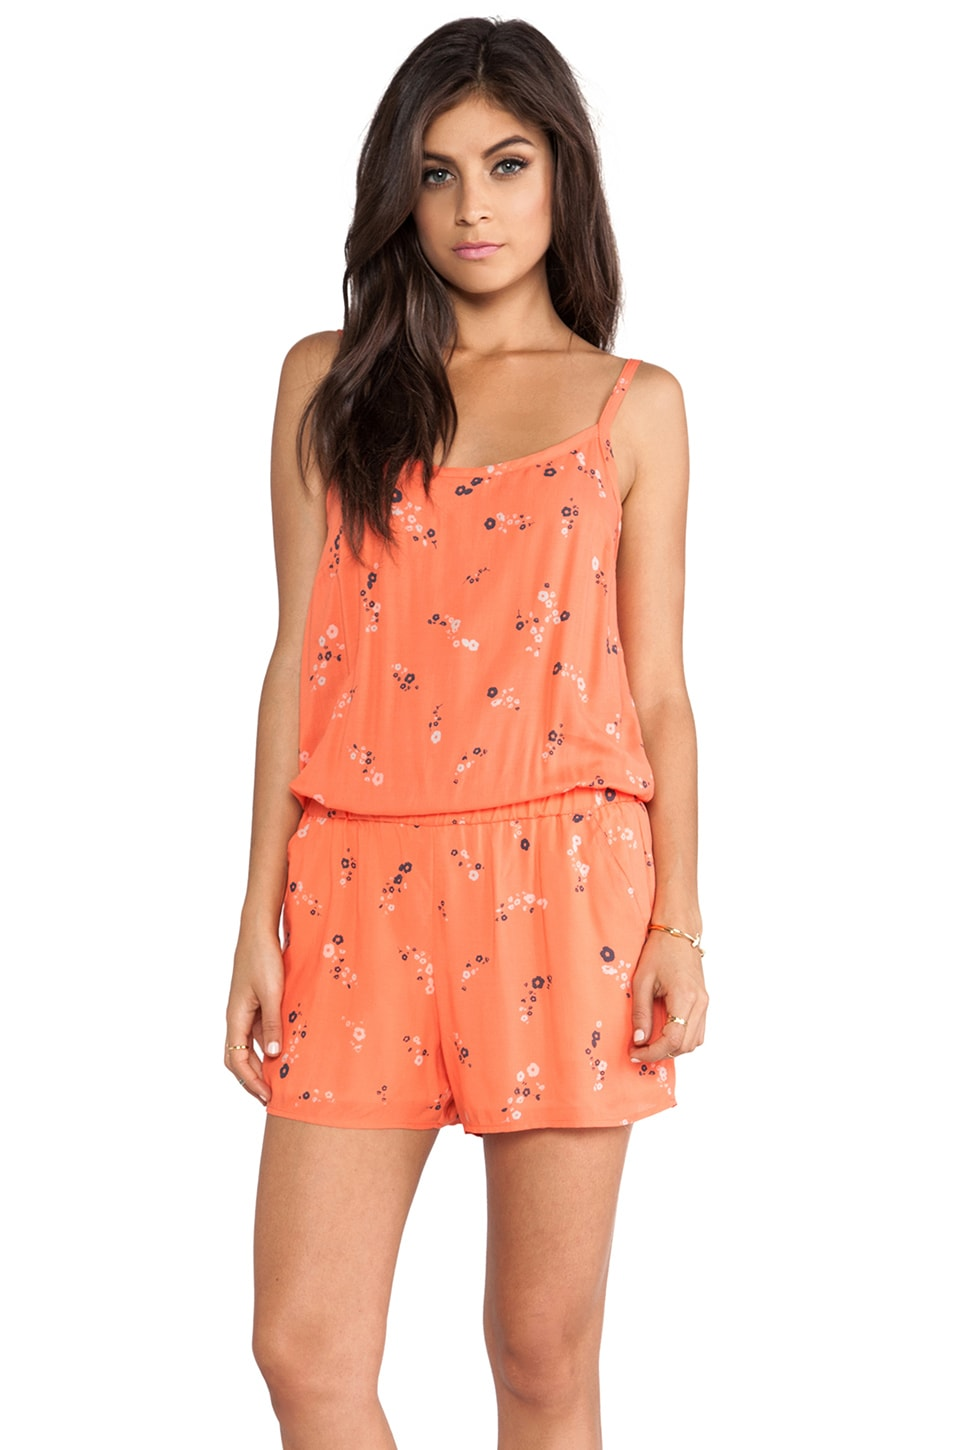 Splendid California Poppies Romper in Coral